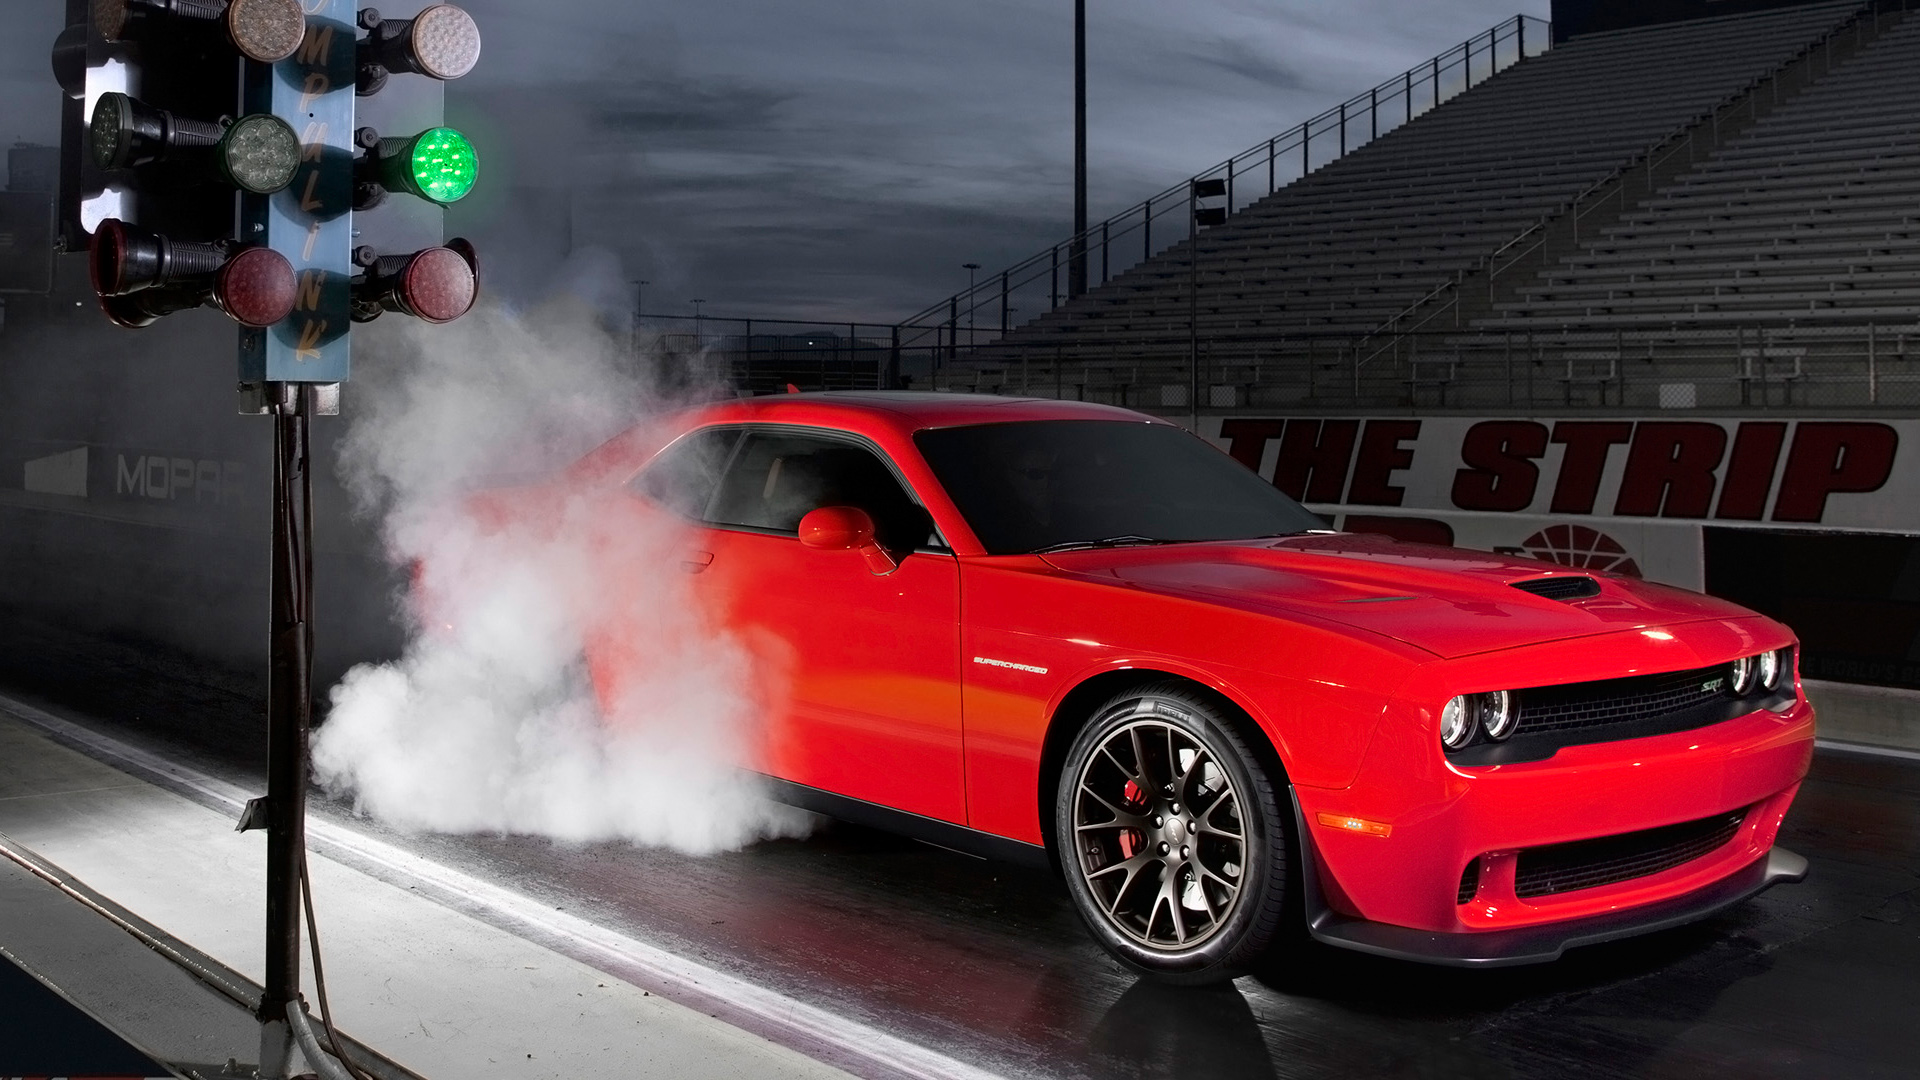 2015 Dodge Challenger SRT Burnout Wallpaper HD Car Wallpapers 1920x1080